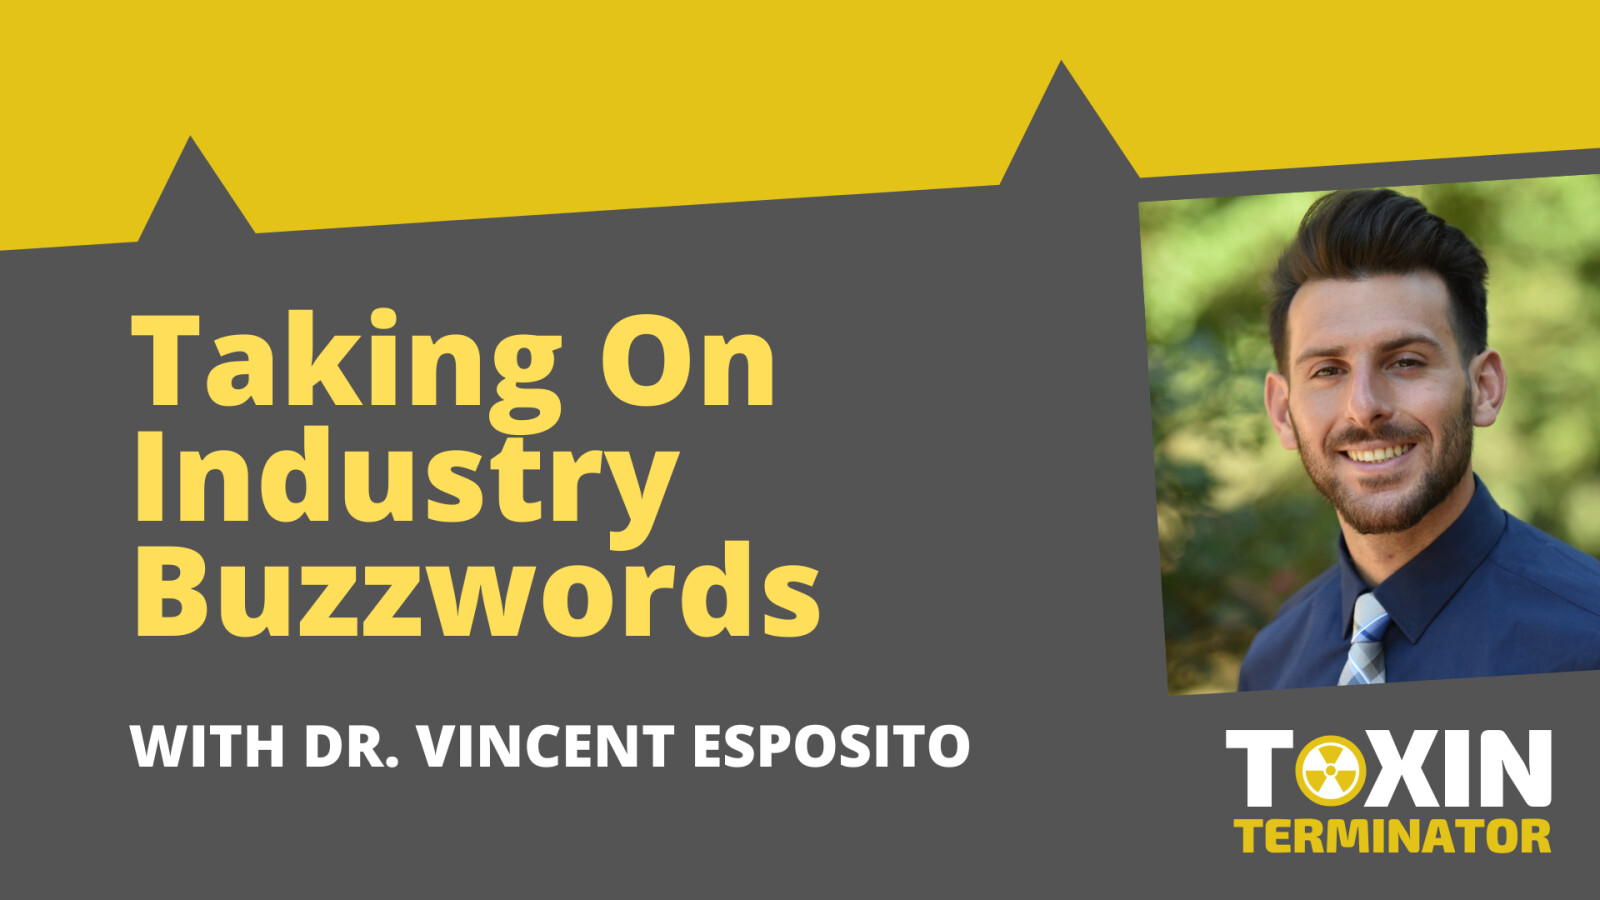 Taking on the Industry Buzzwords with Dr. Vincent Esposito